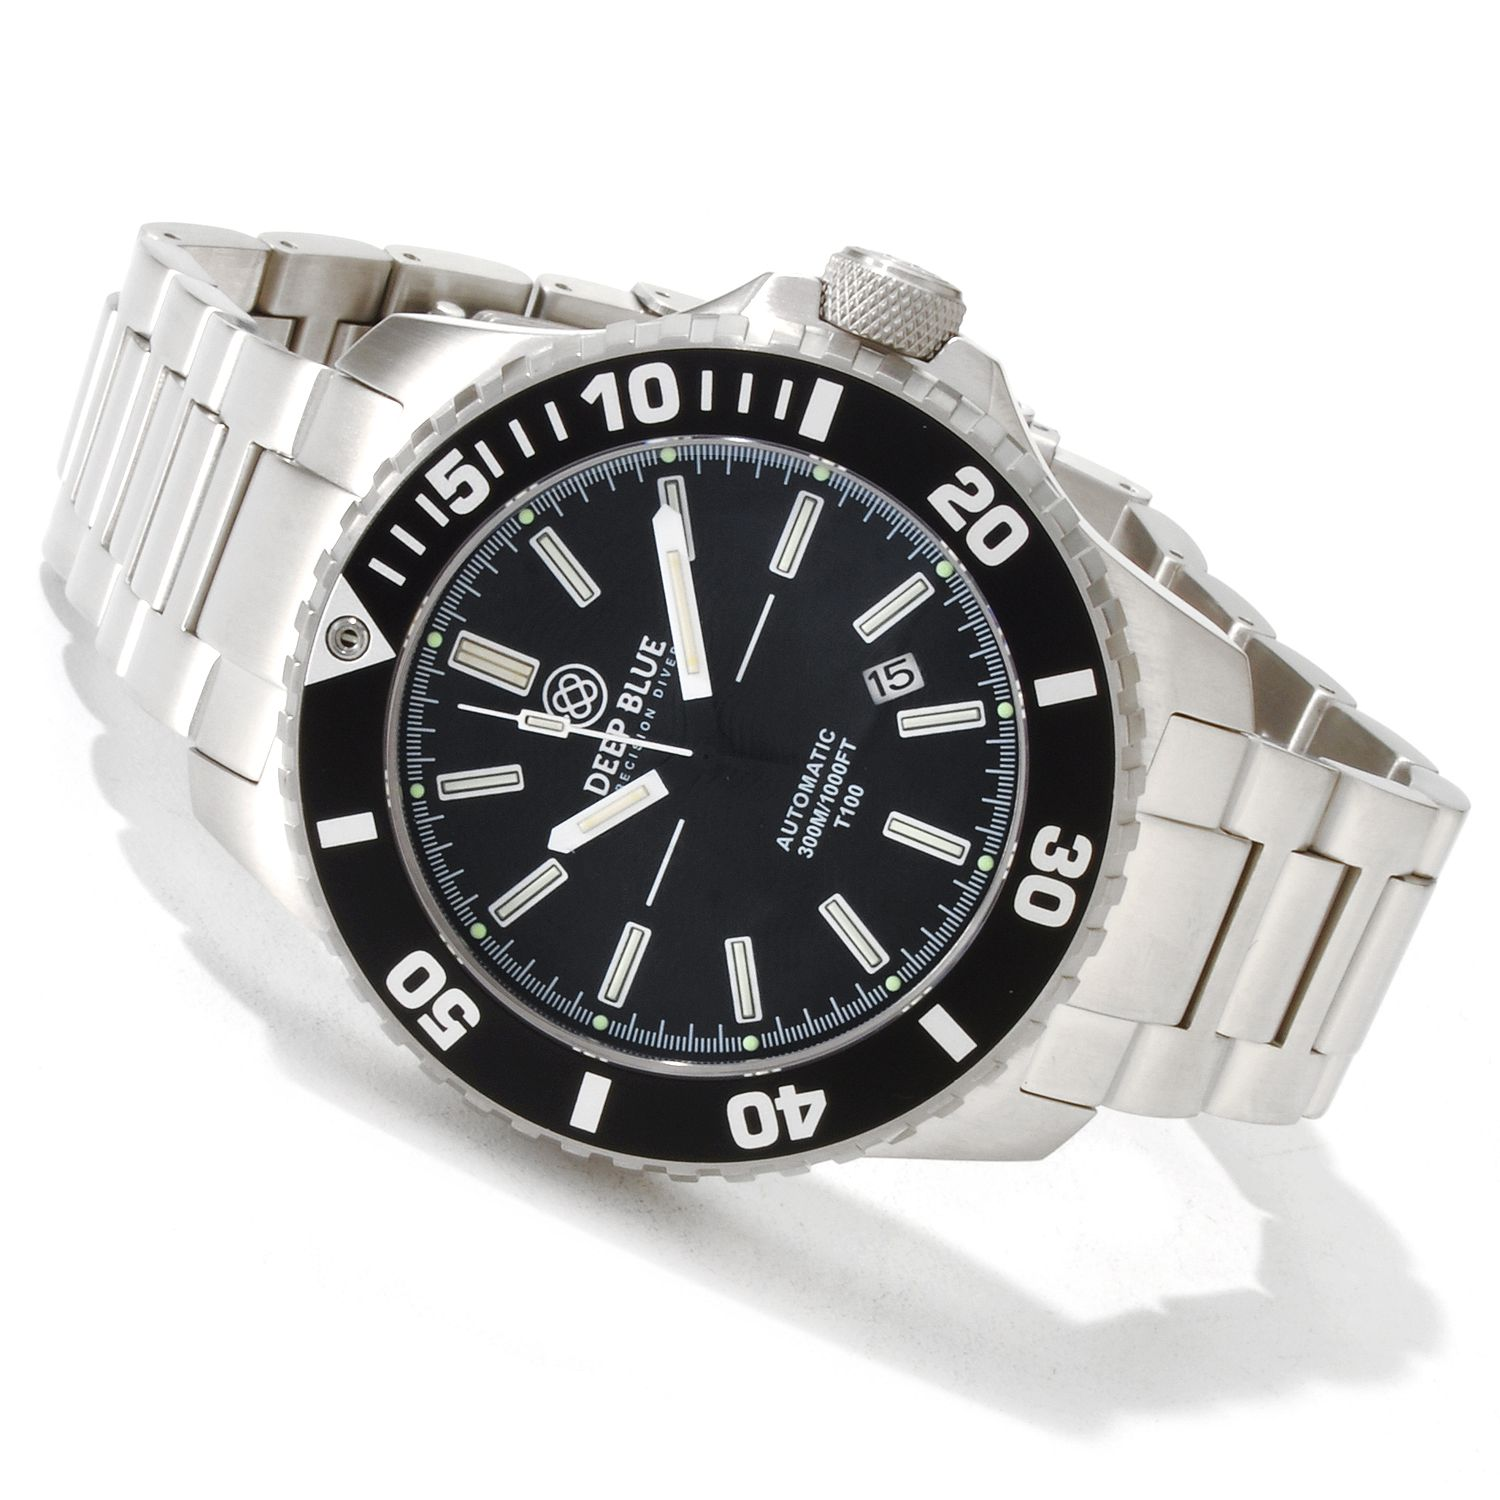 Deep blue daynight diver t100 tritium automatic watch ebay for Tritium dive watches